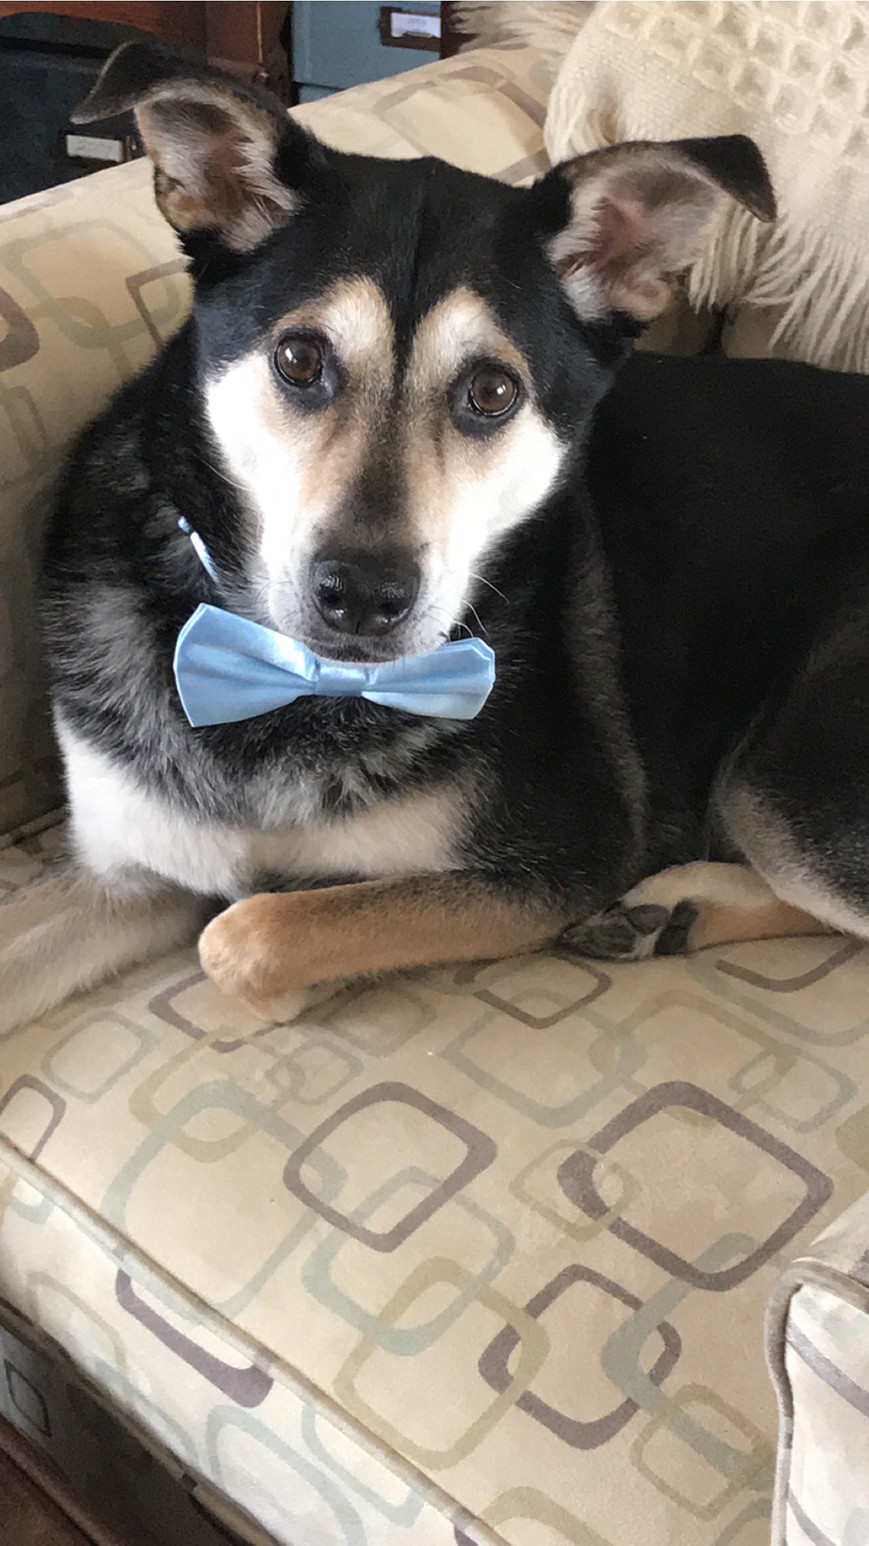 The newlywed's dog, Striker wearing a bow tie.